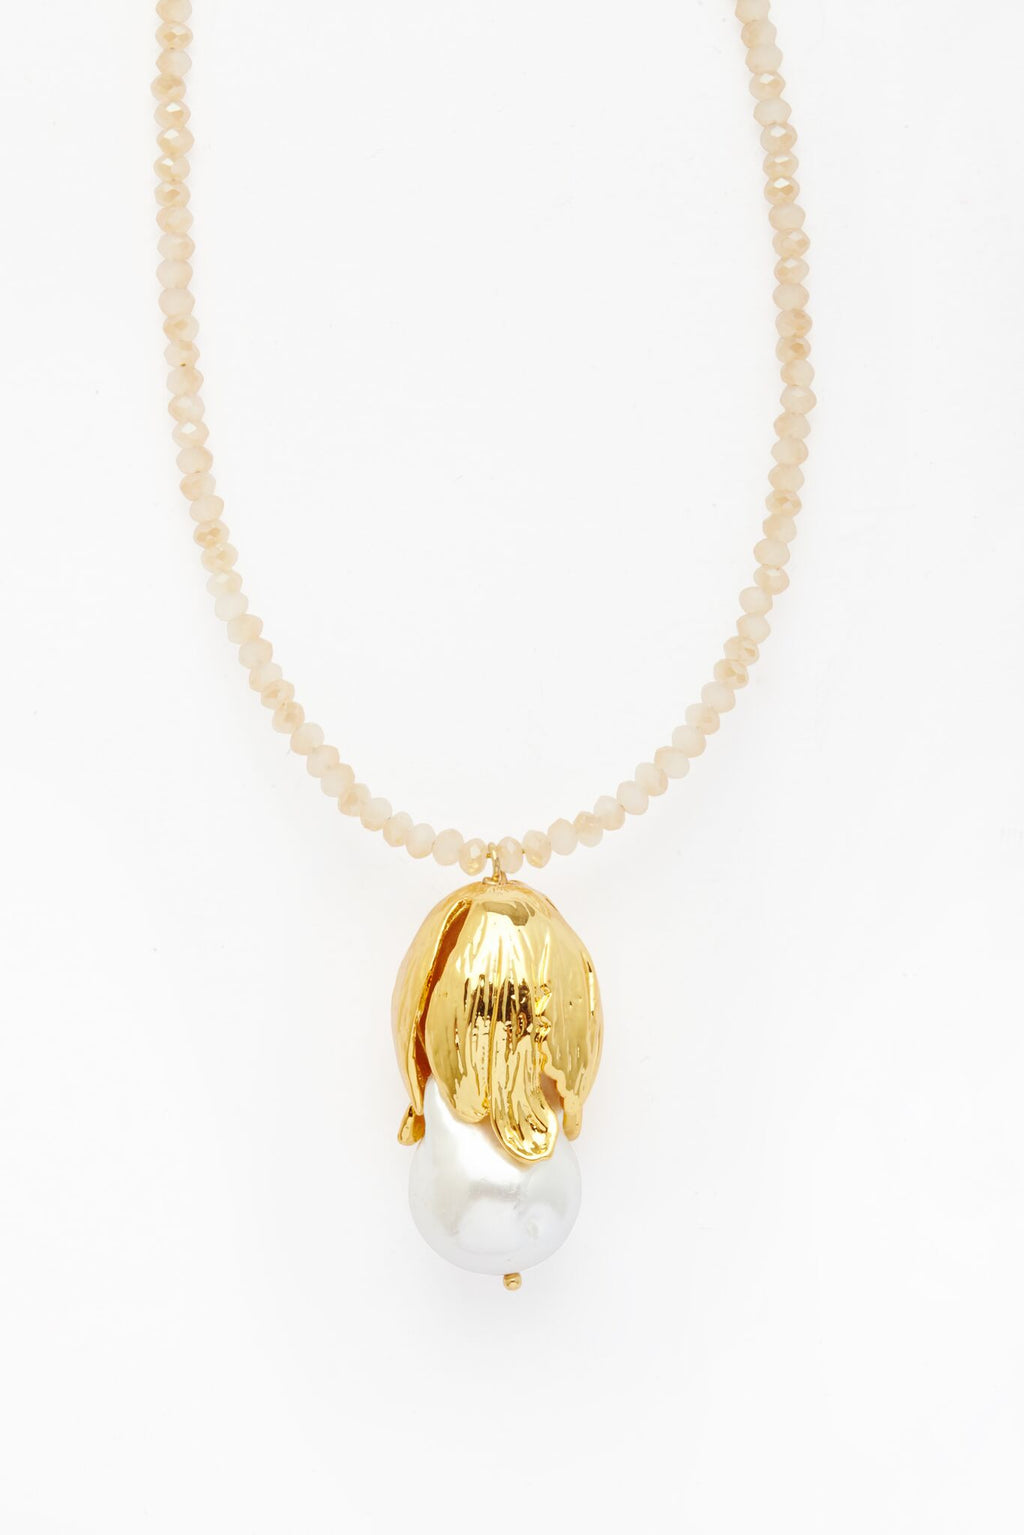 Pearl's Nest Necklace